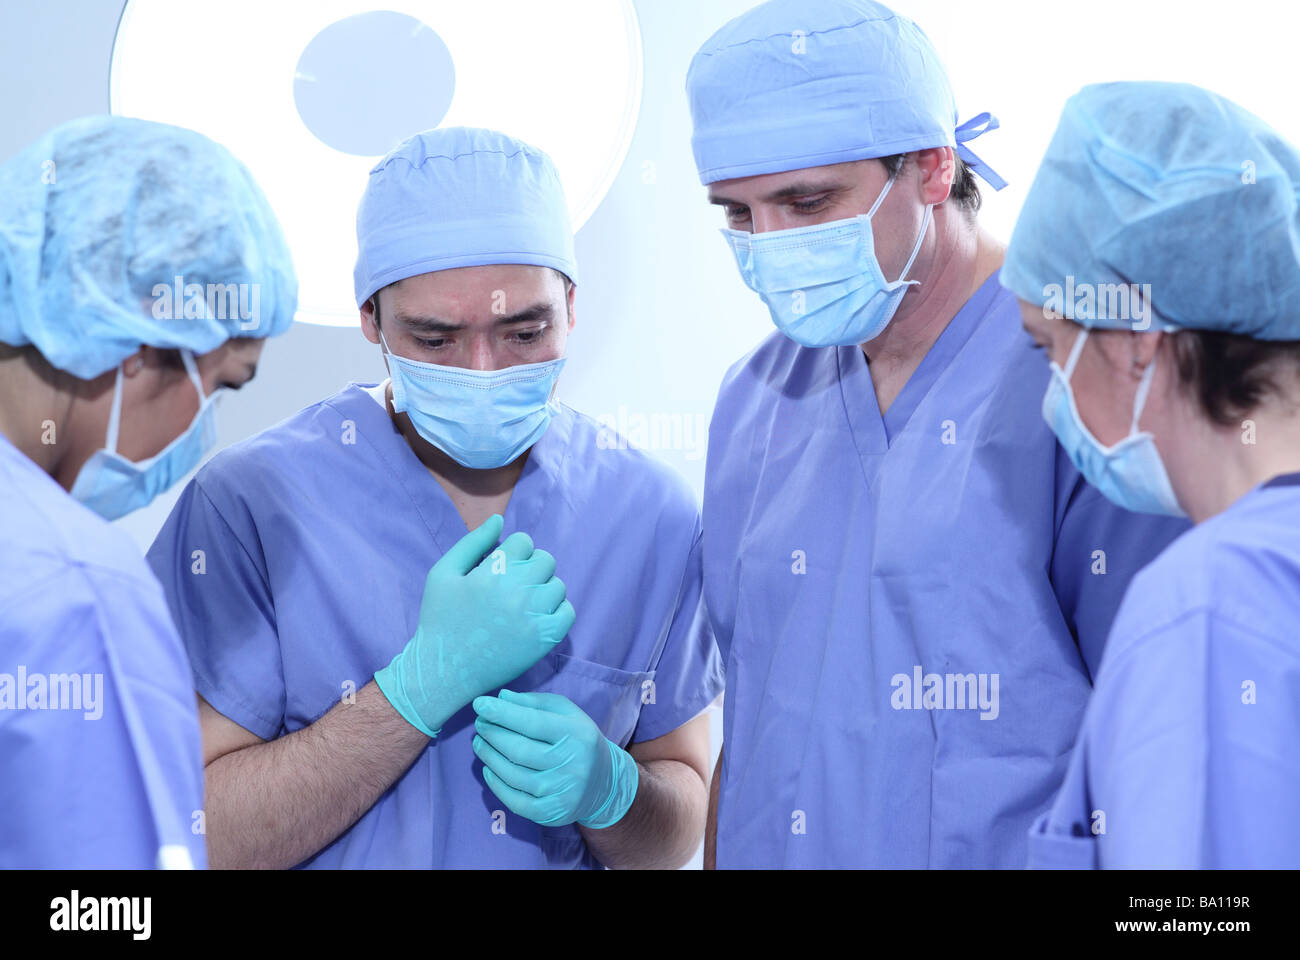 Group of surgeons in operating room - Stock Image